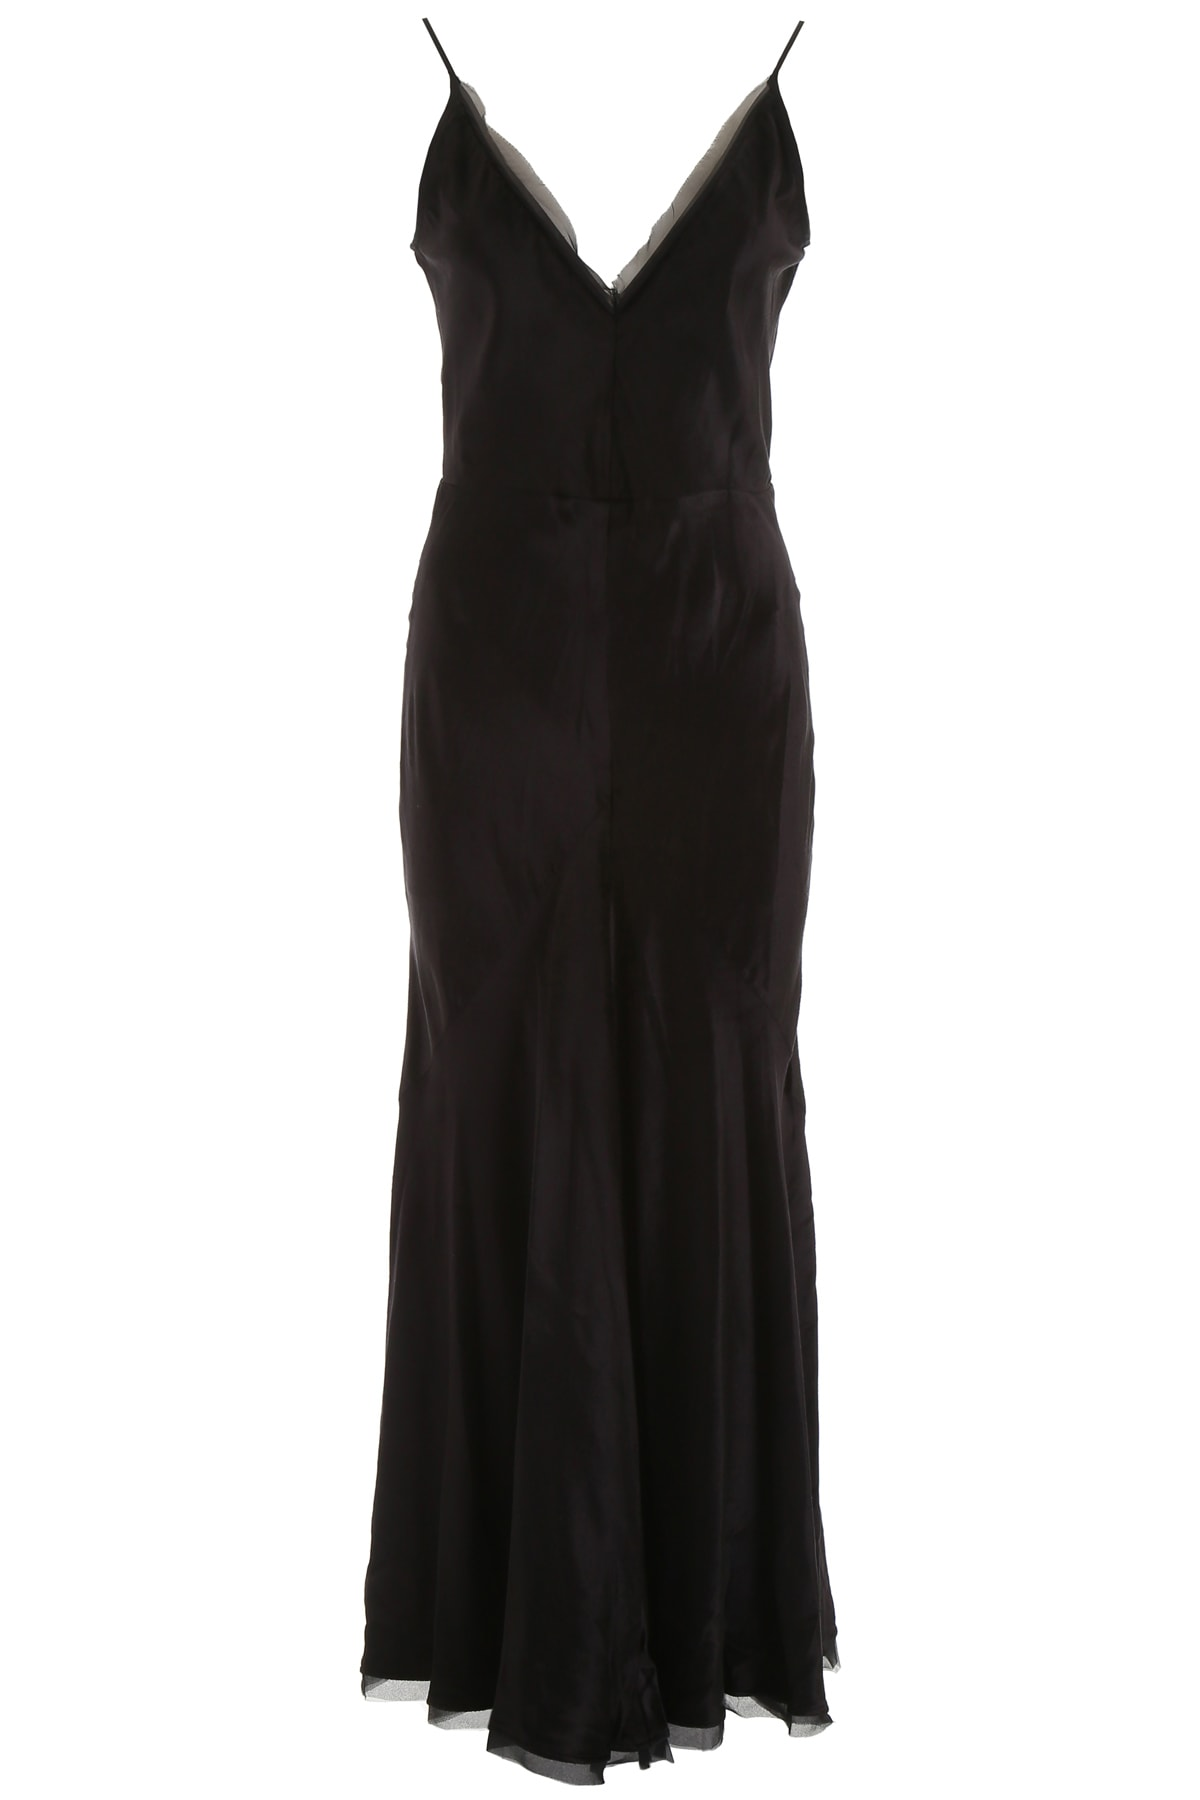 Gabriela Hearst Velvet Bridget Dress